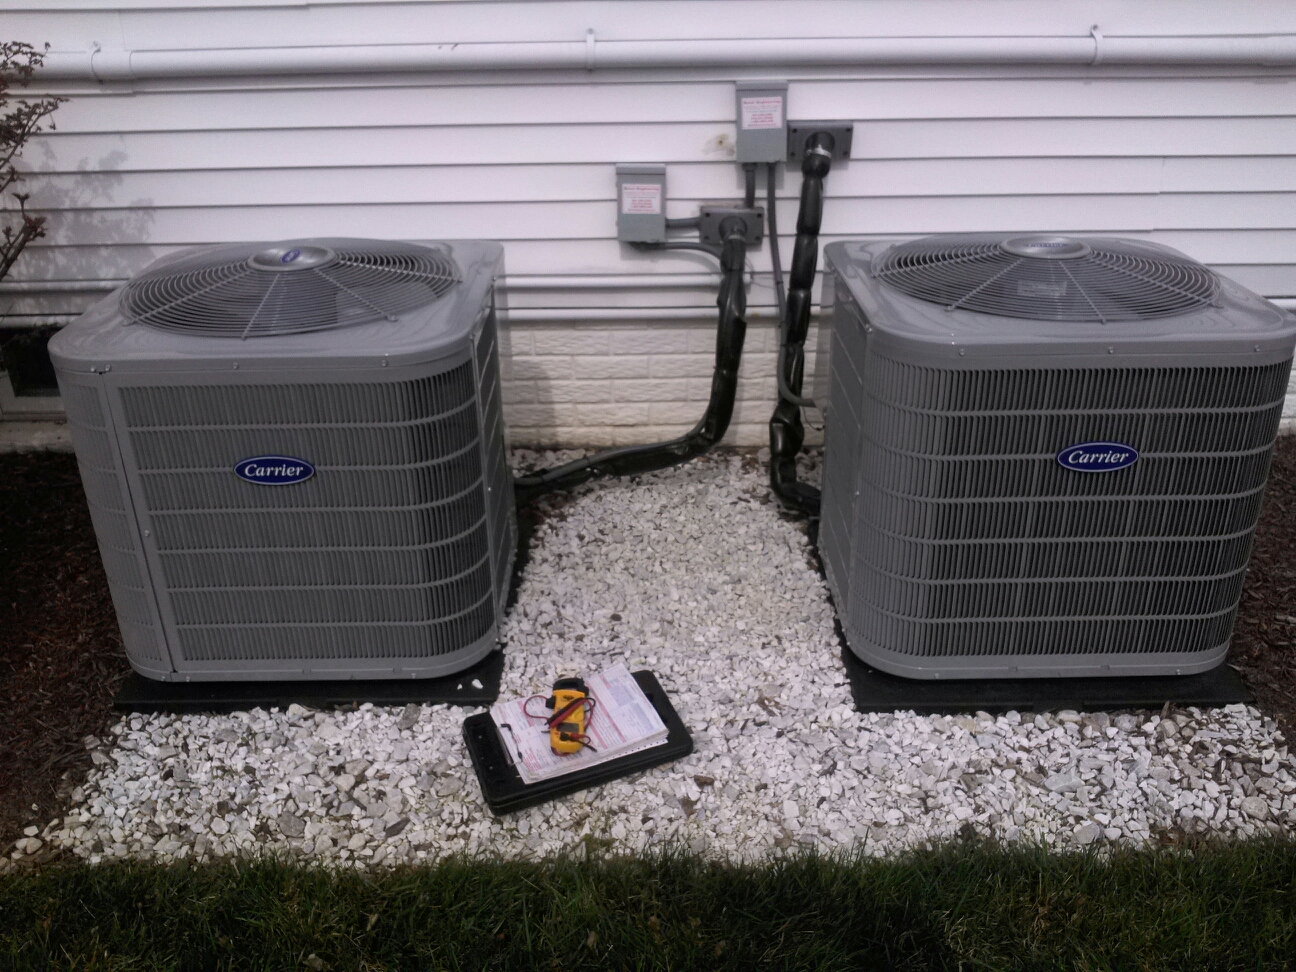 Gambrills, MD - Carrier ac air conditioner & cooling system installation repair service call in Gambrills Maryland 21054